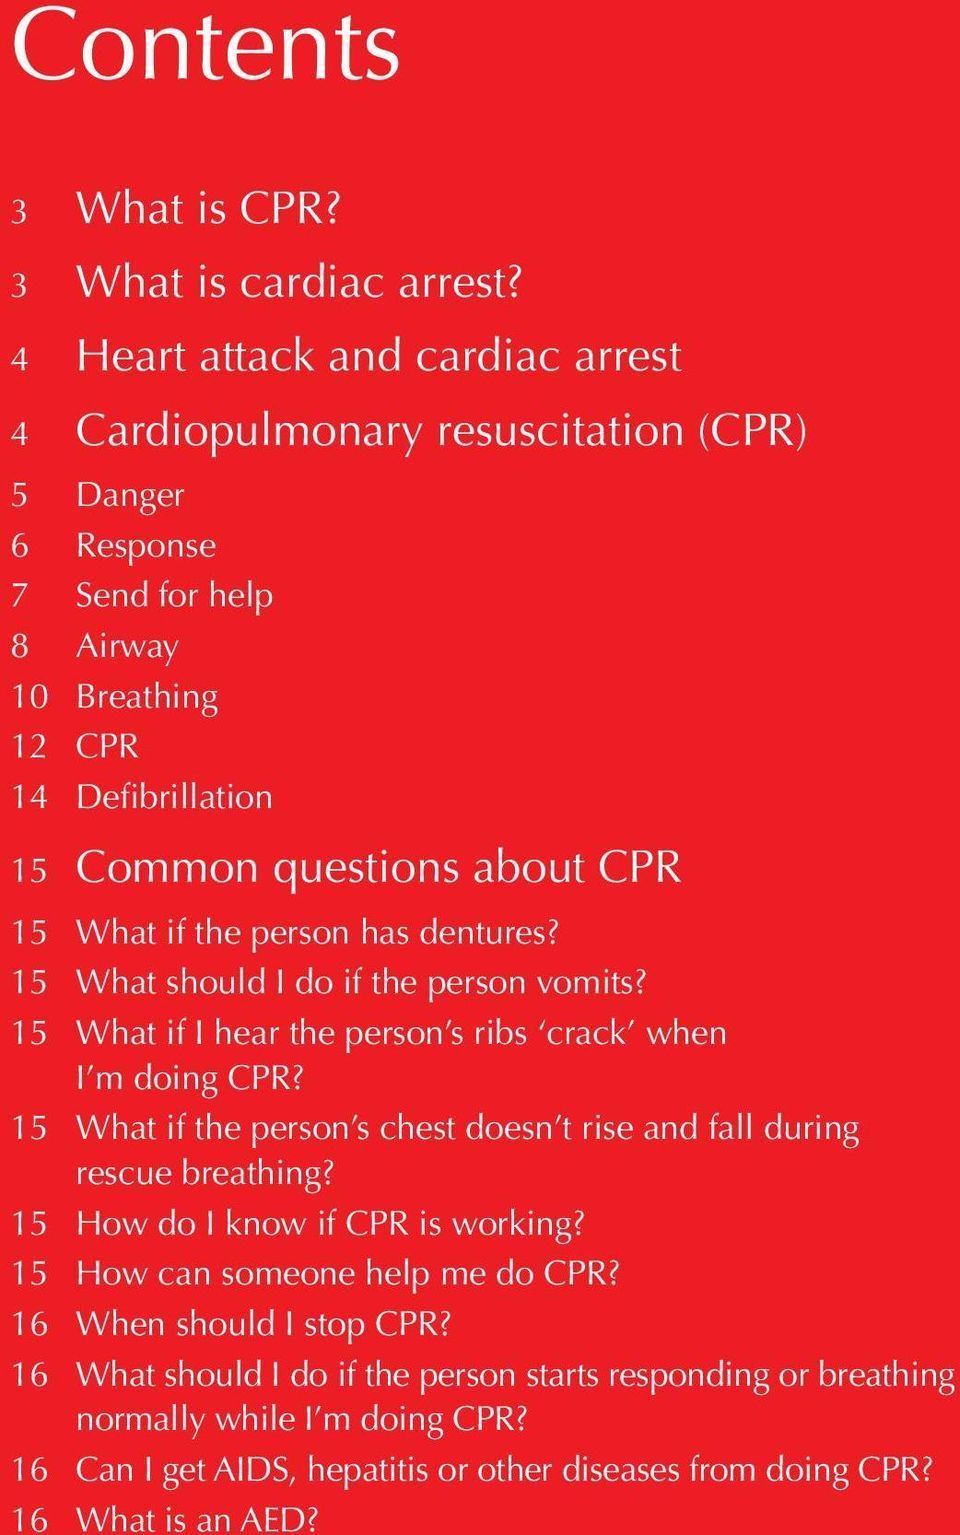 CPR 15 What if the person has dentures? 15 What should I do if the person vomits? 15 What if I hear the person s ribs crack when I m doing CPR?